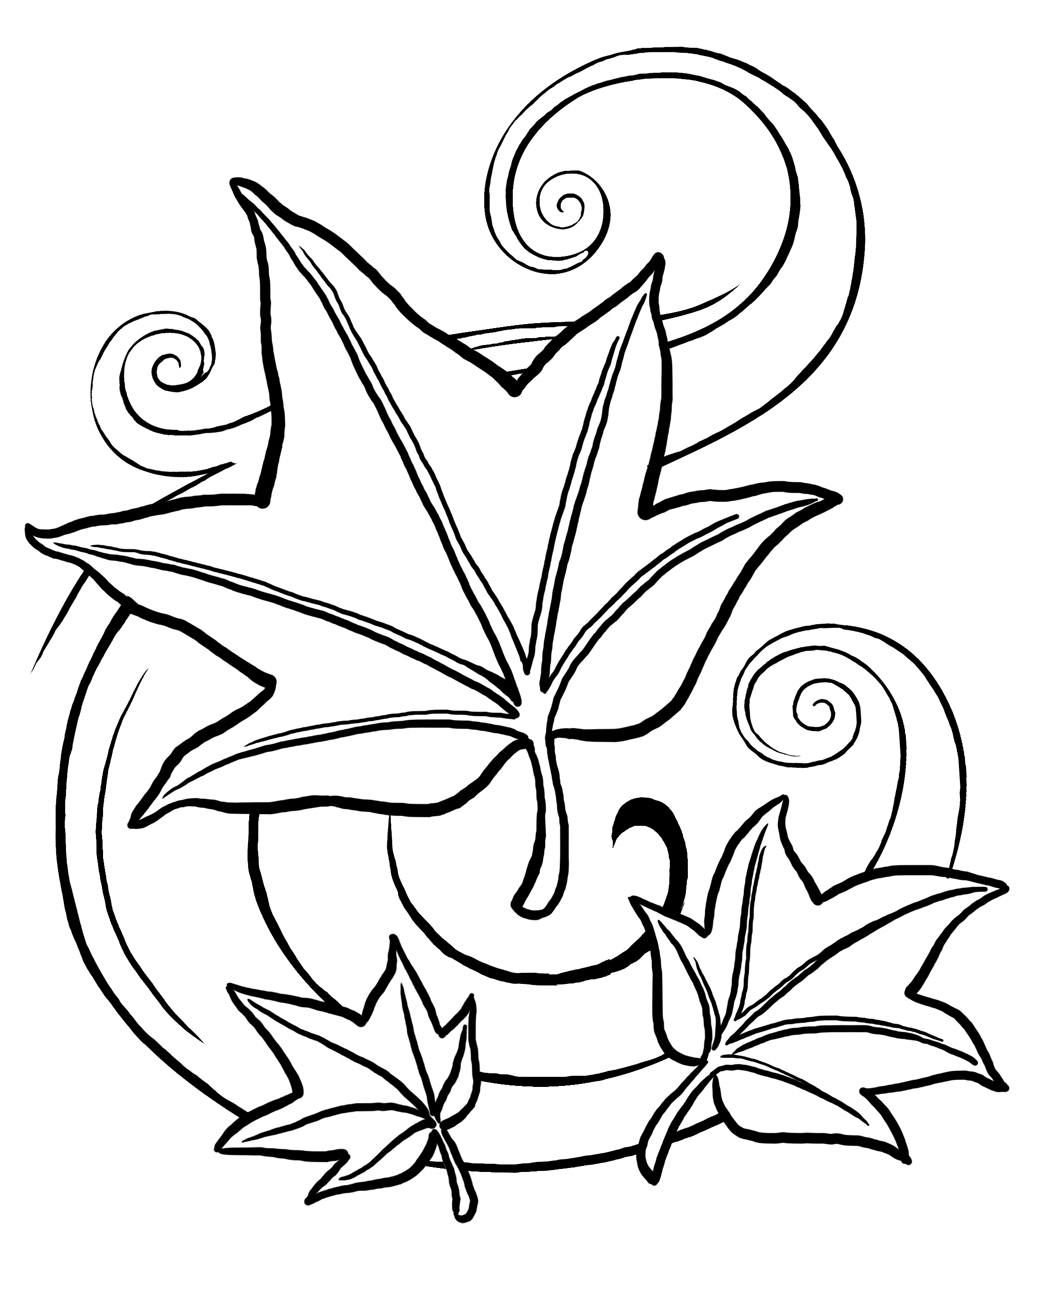 fall leaves coloring sheets autumn leaves coloring page crayolacom coloring fall leaves sheets